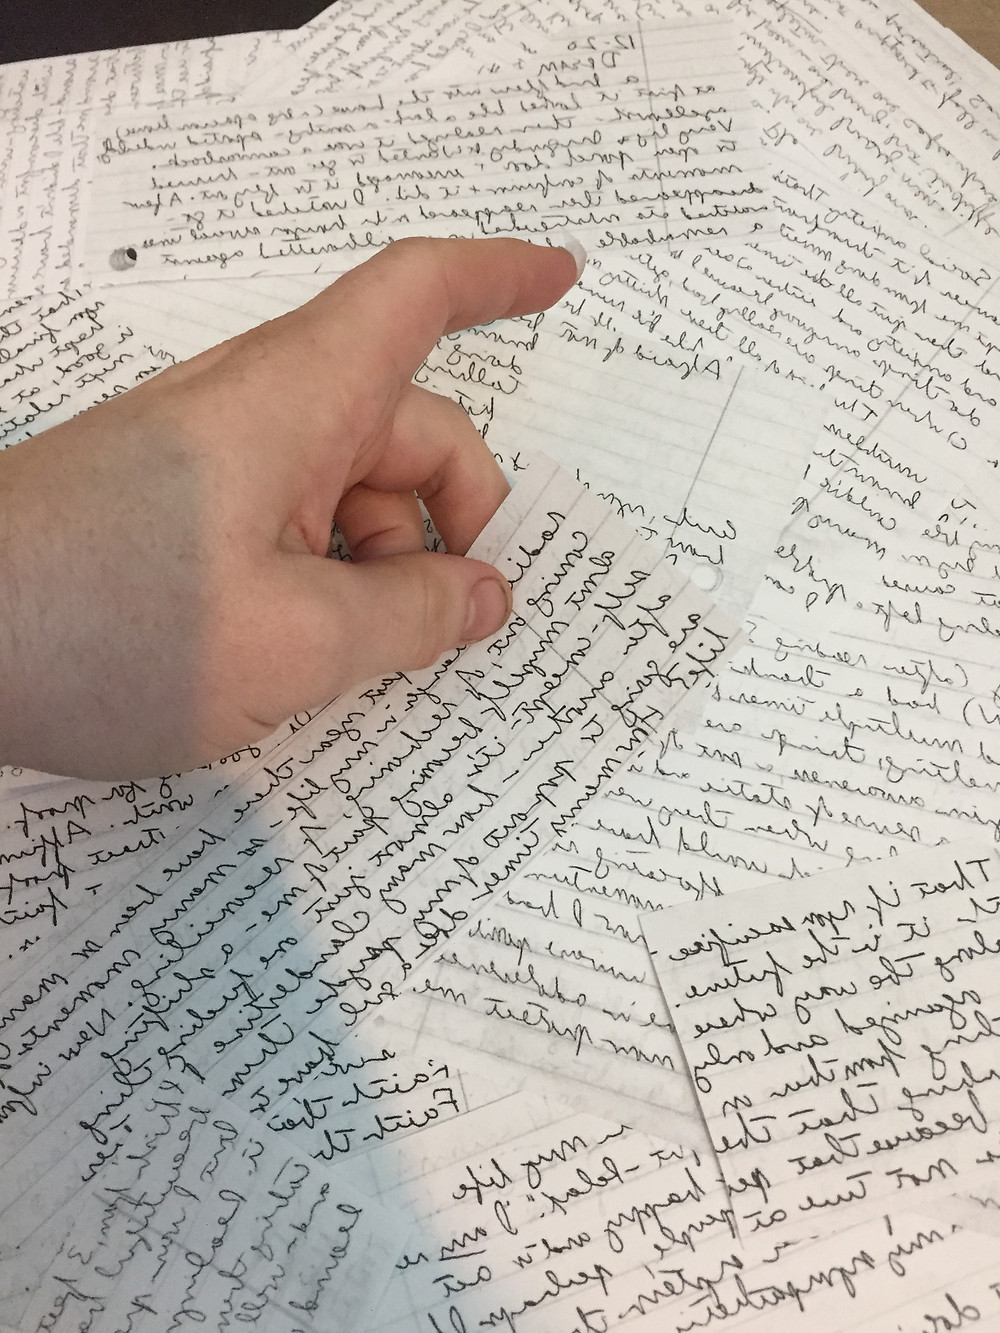 A hand places pieces of paper together that have handwriting on them.